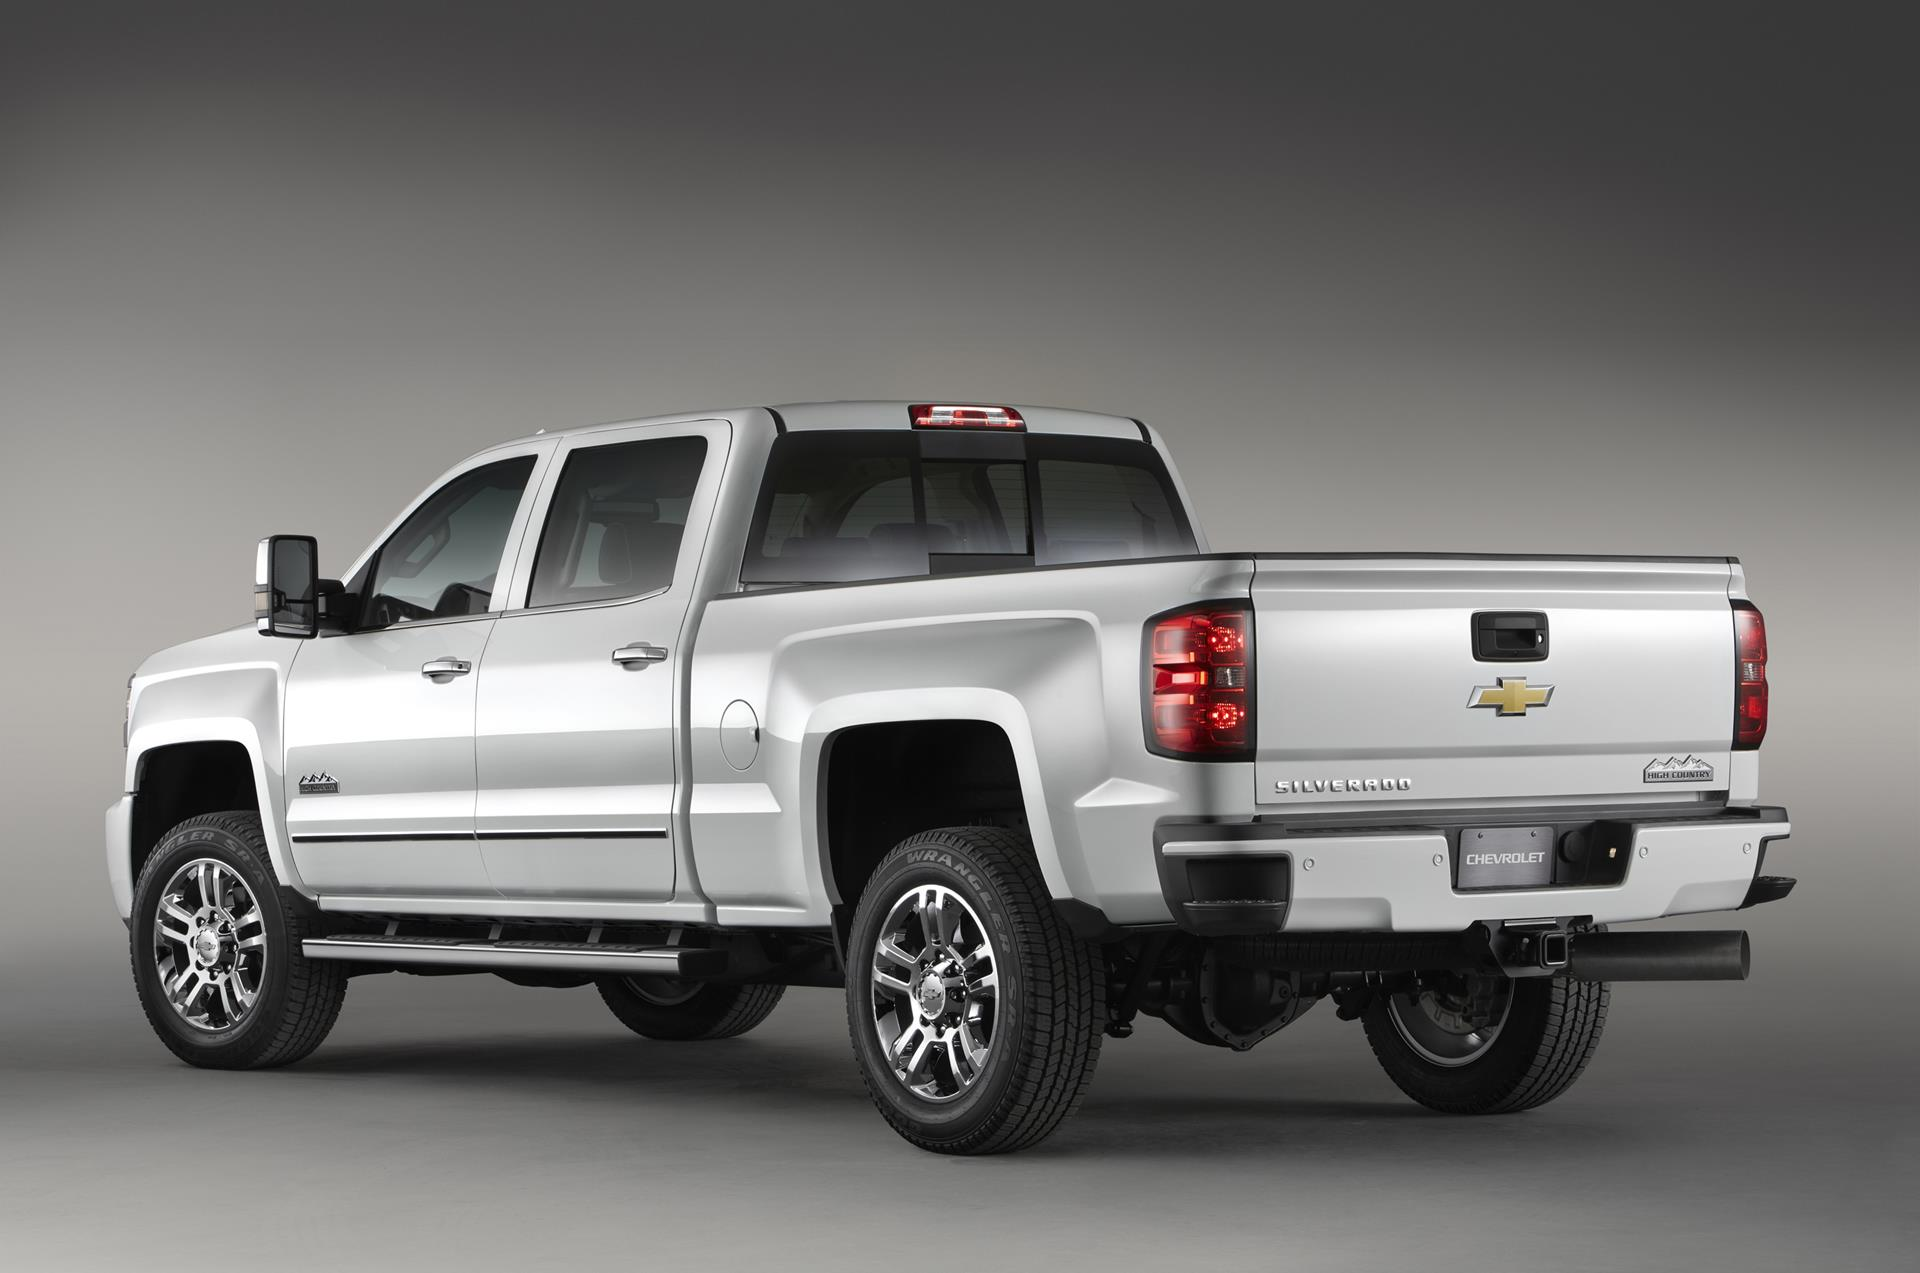 2018 Chevy Silverado >> 2015 Chevrolet Silverado HD Image. Photo 33 of 61